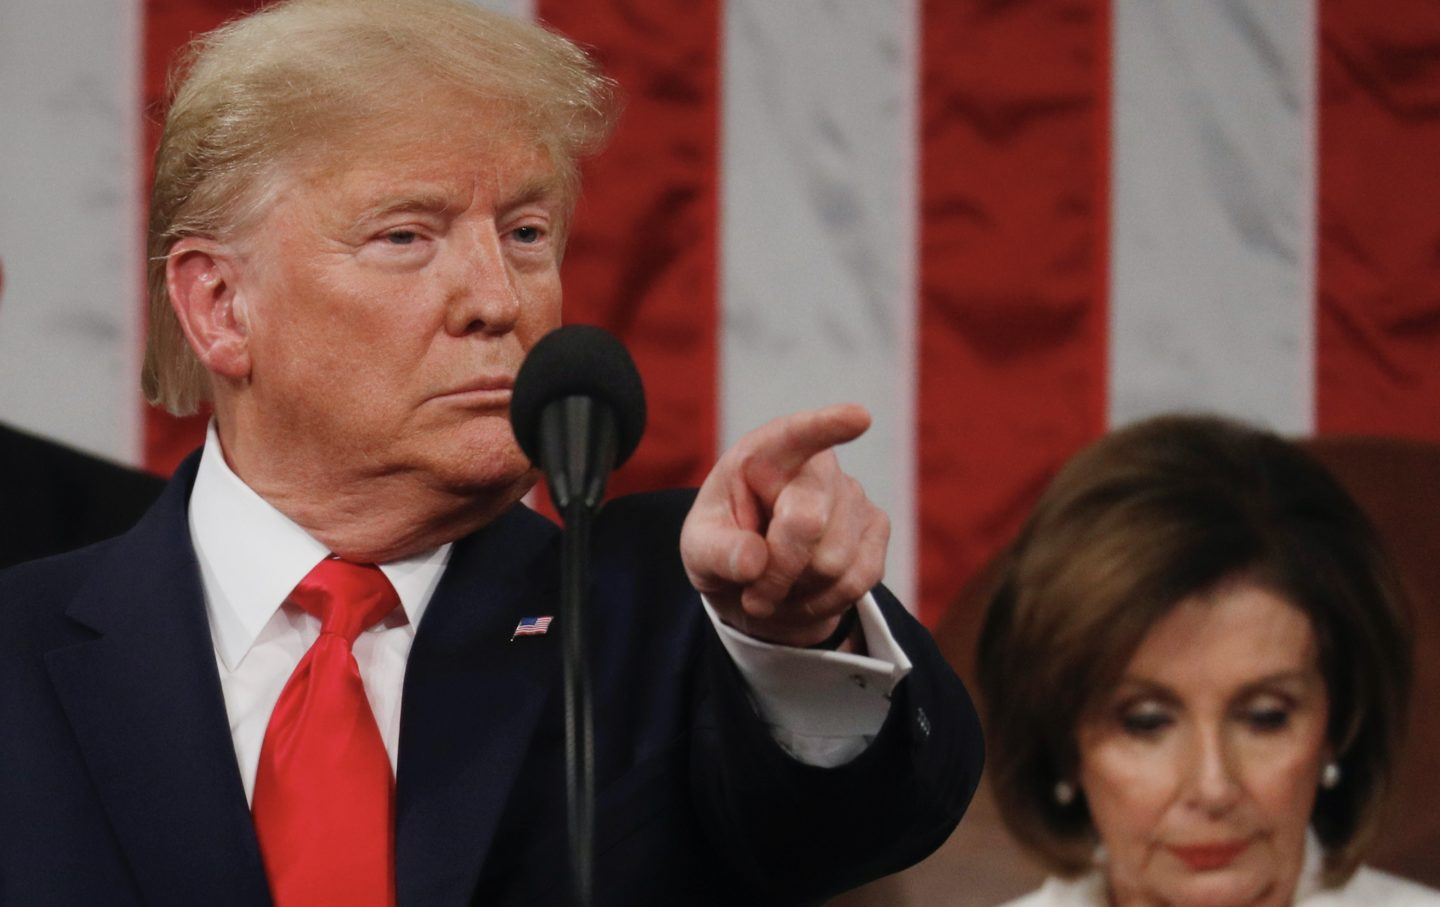 DC: U.S. President Trump delivers State of the Union address